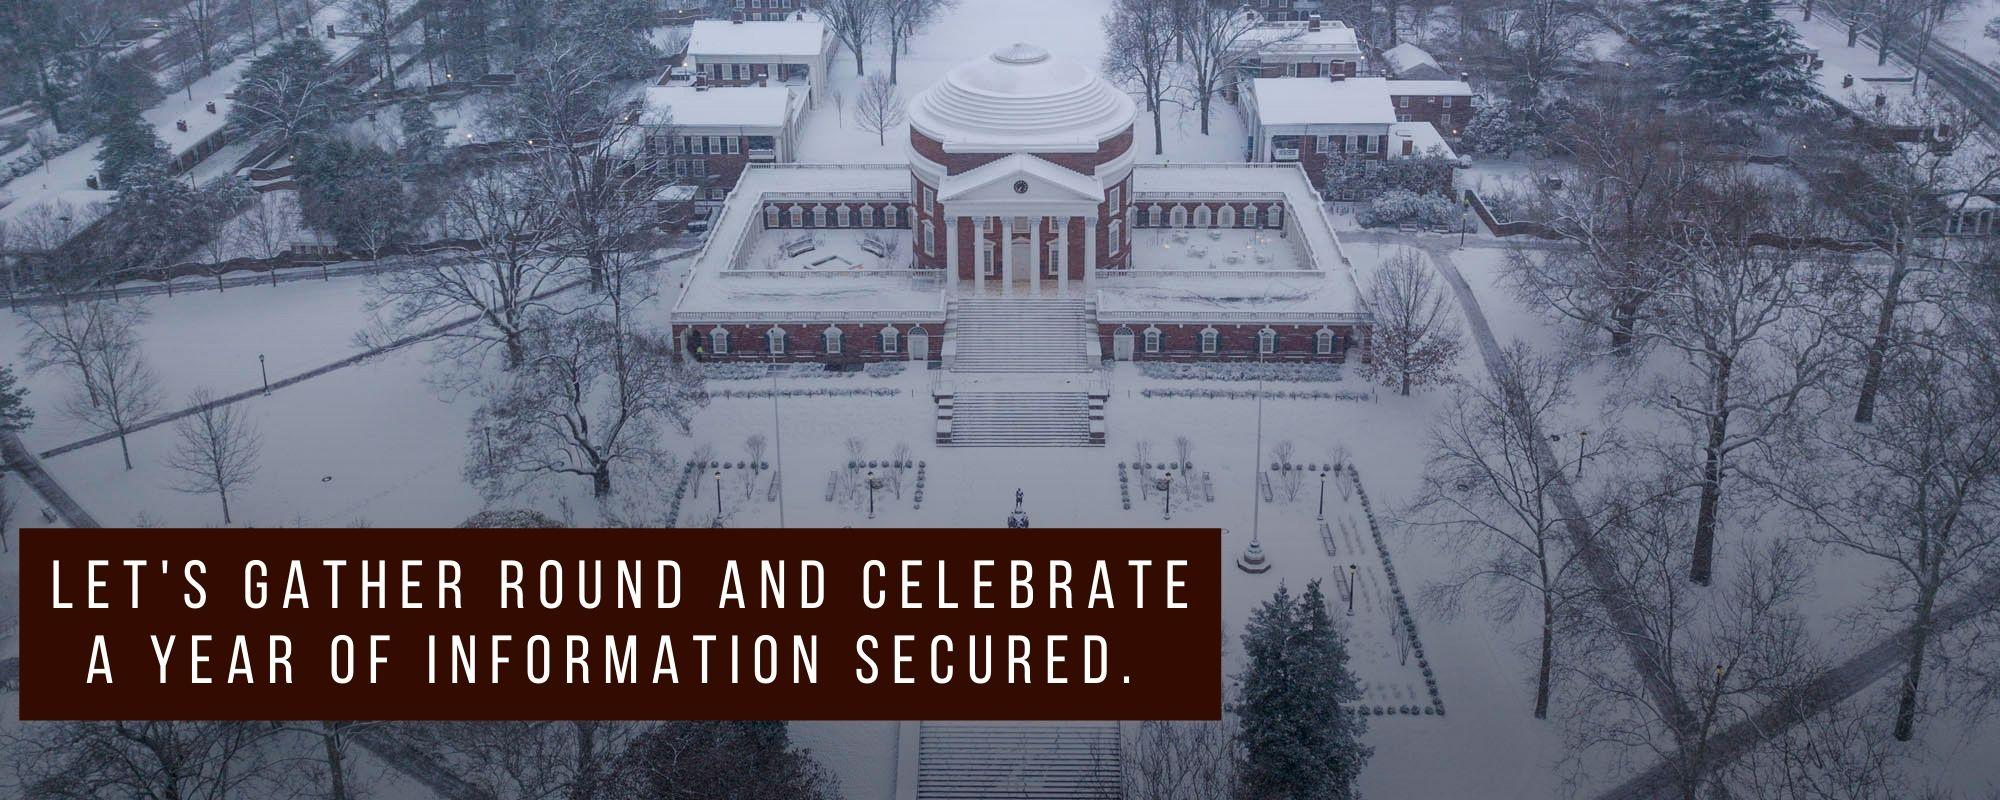 "A photo of the Rotunda from above, covered in snow, with the text: ""Let's gather round and celebrate a year of information secured."""